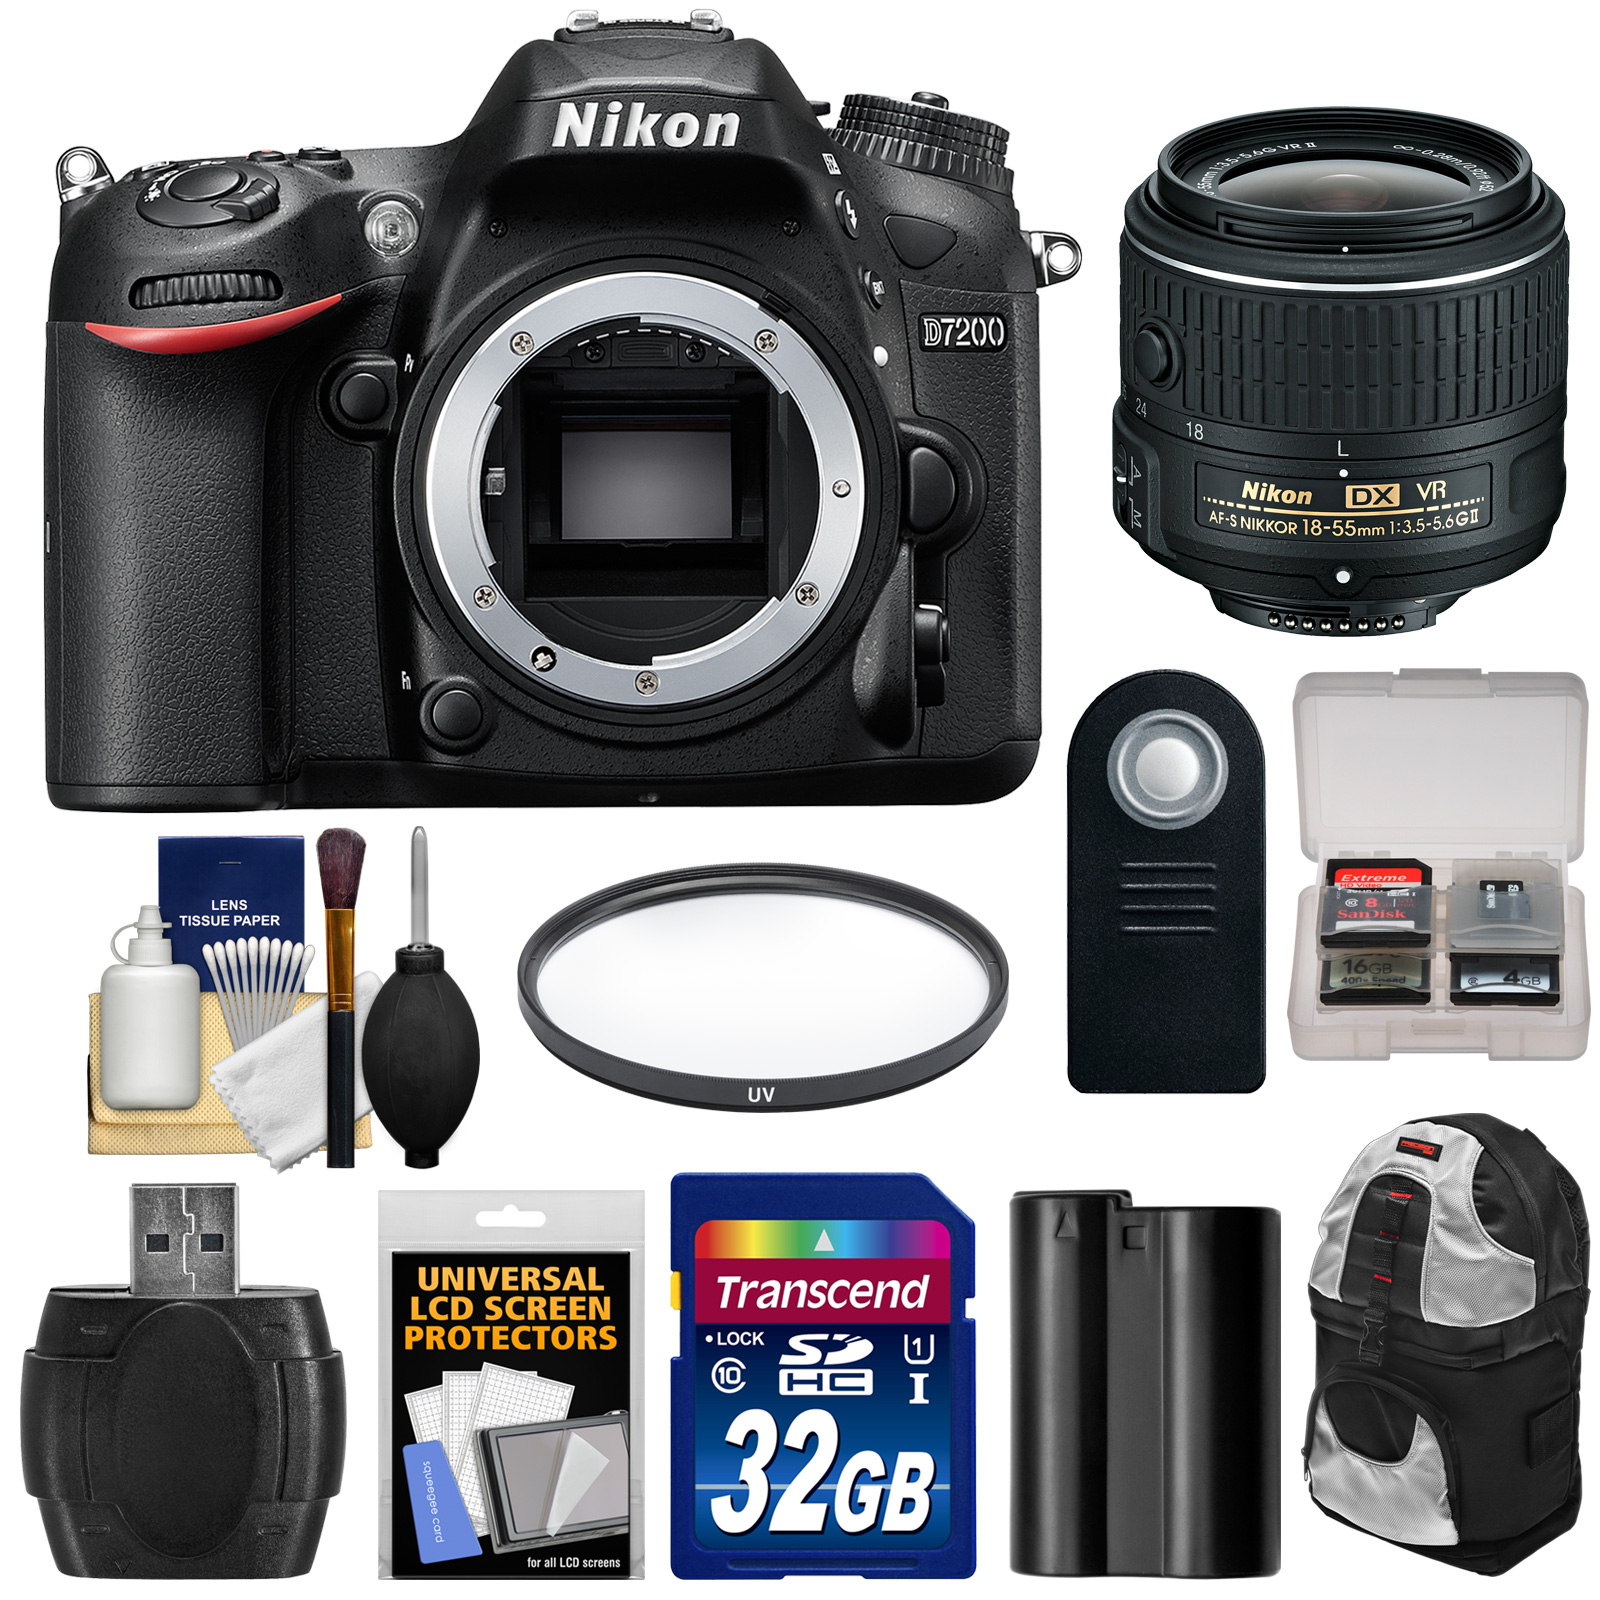 Nikon D7200 Wi-Fi Digital SLR Camera Body - Factory Refurbished with 18-55mm VR II Lens + 32GB Card + Battery + Backpack + Filter + Kit